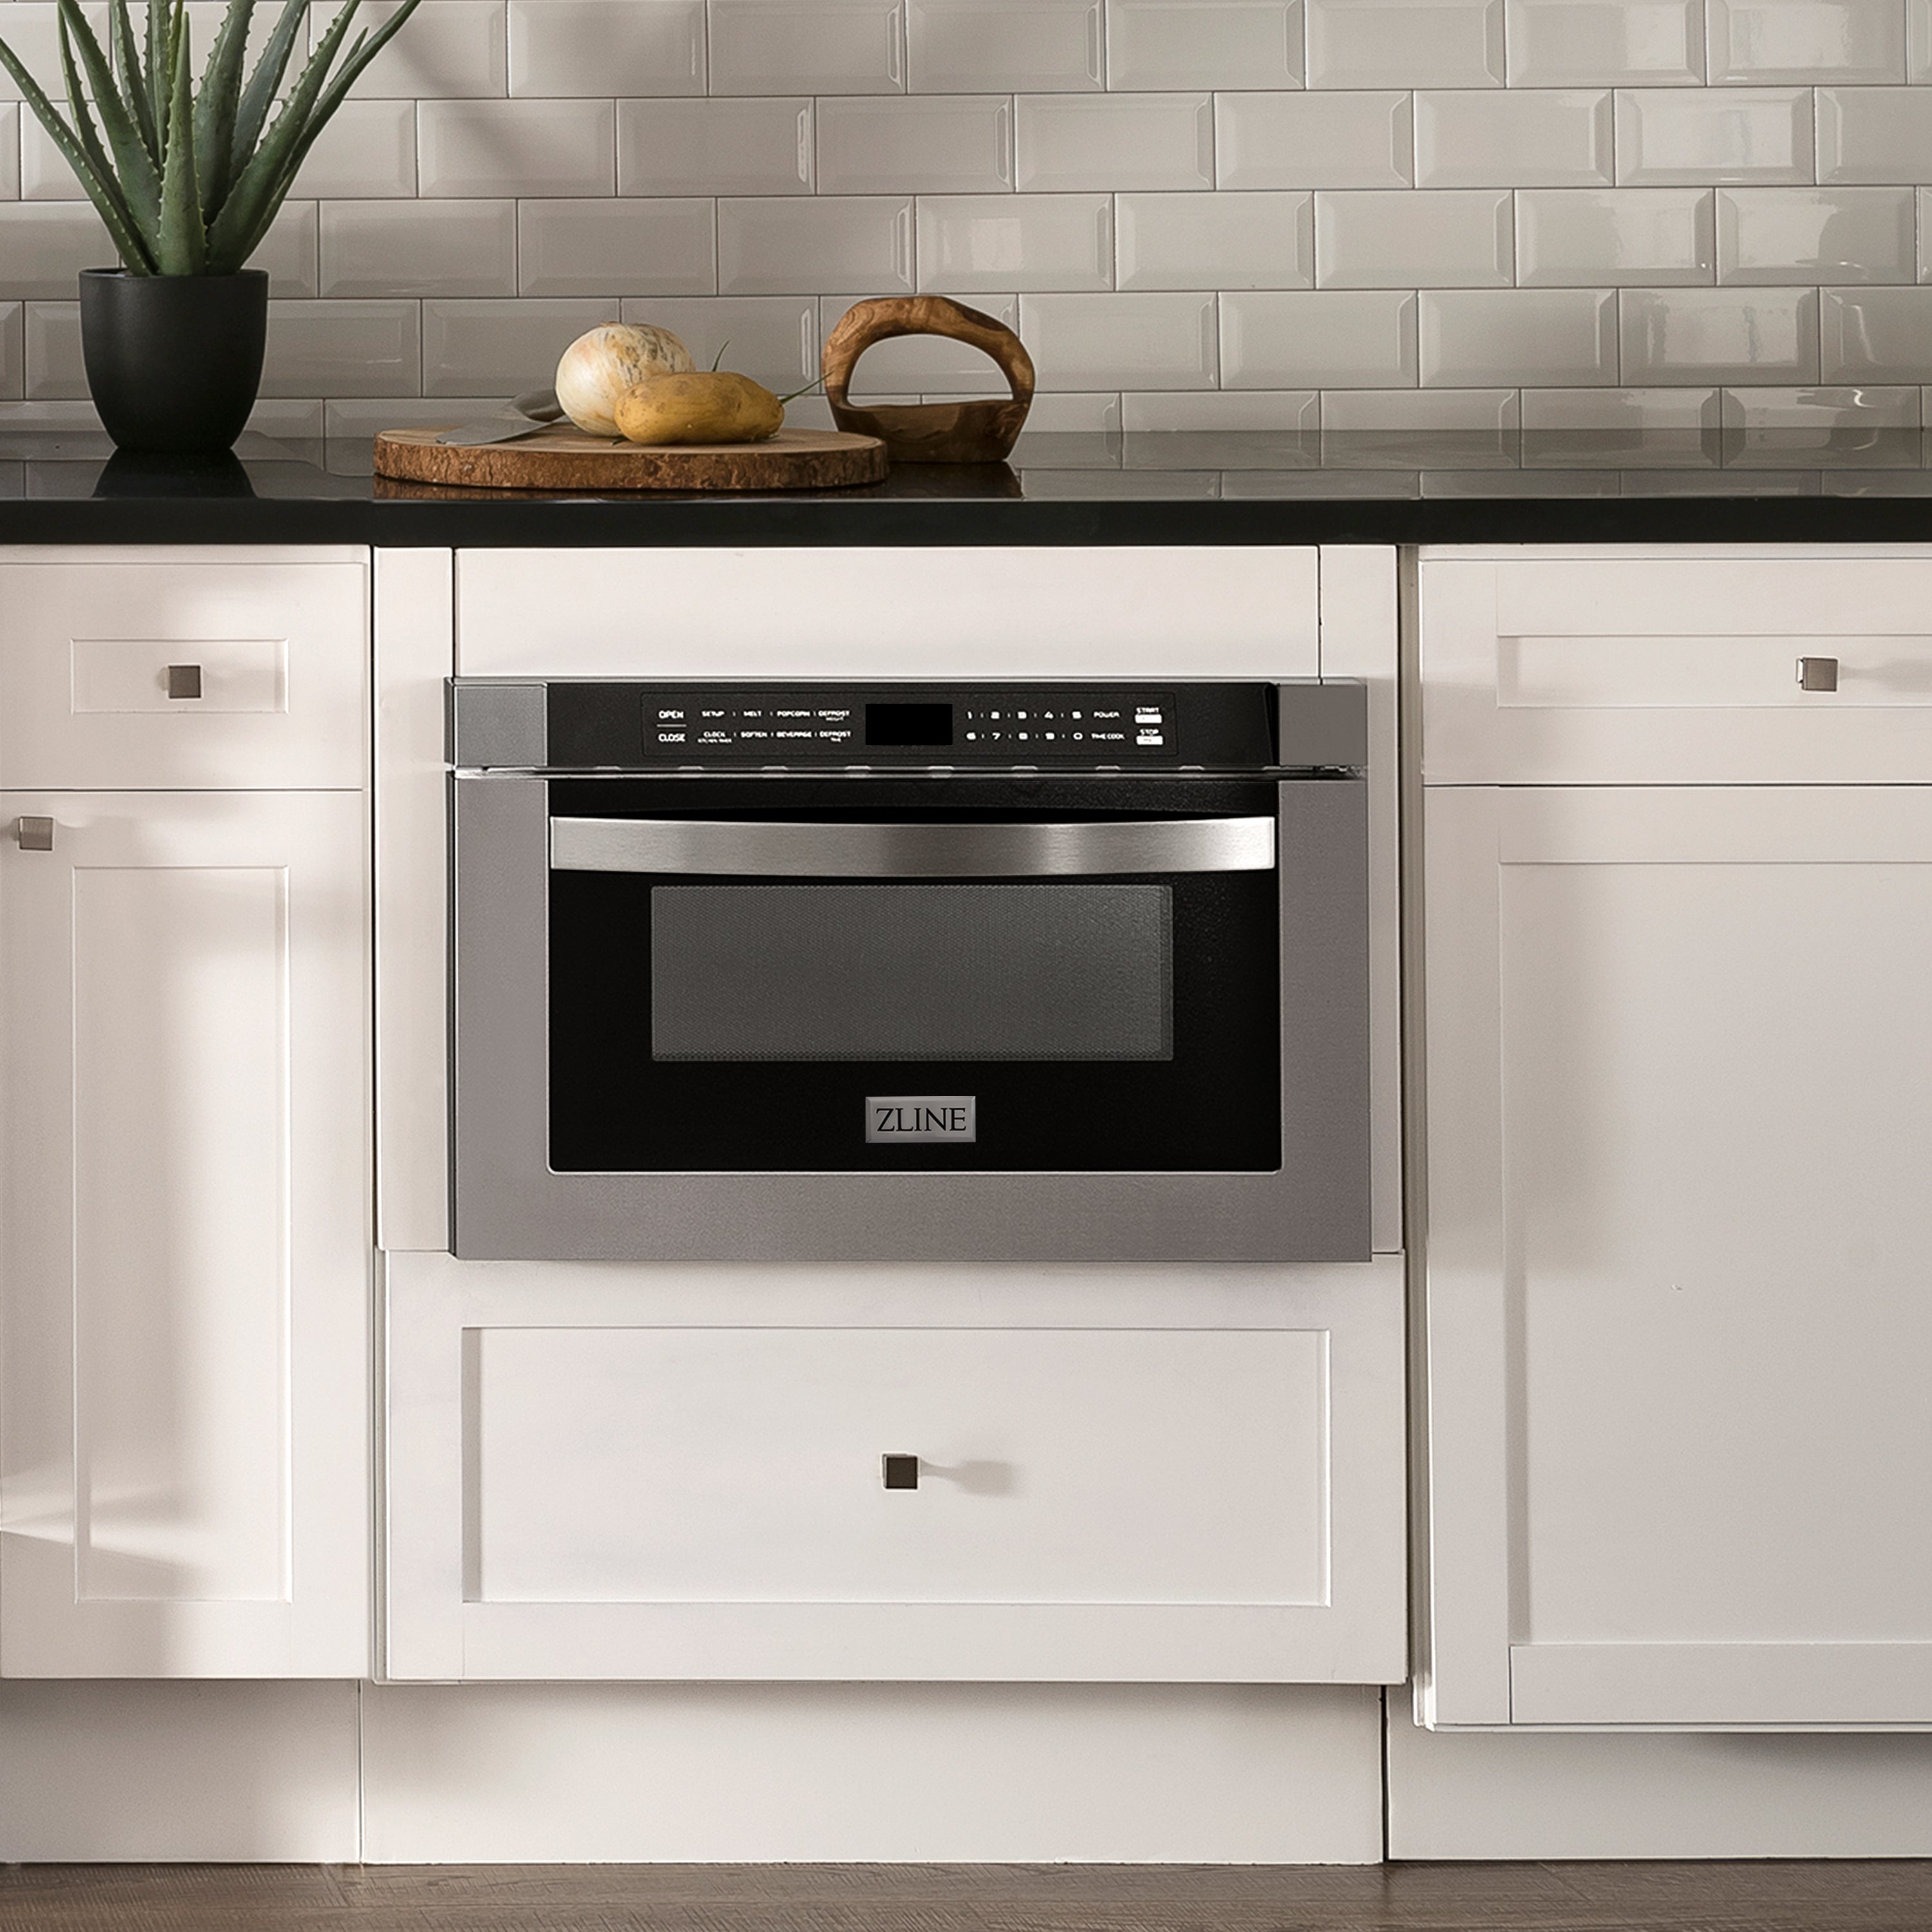 ZLINE Microwave Drawer in Stainless Steel (MWD-1)